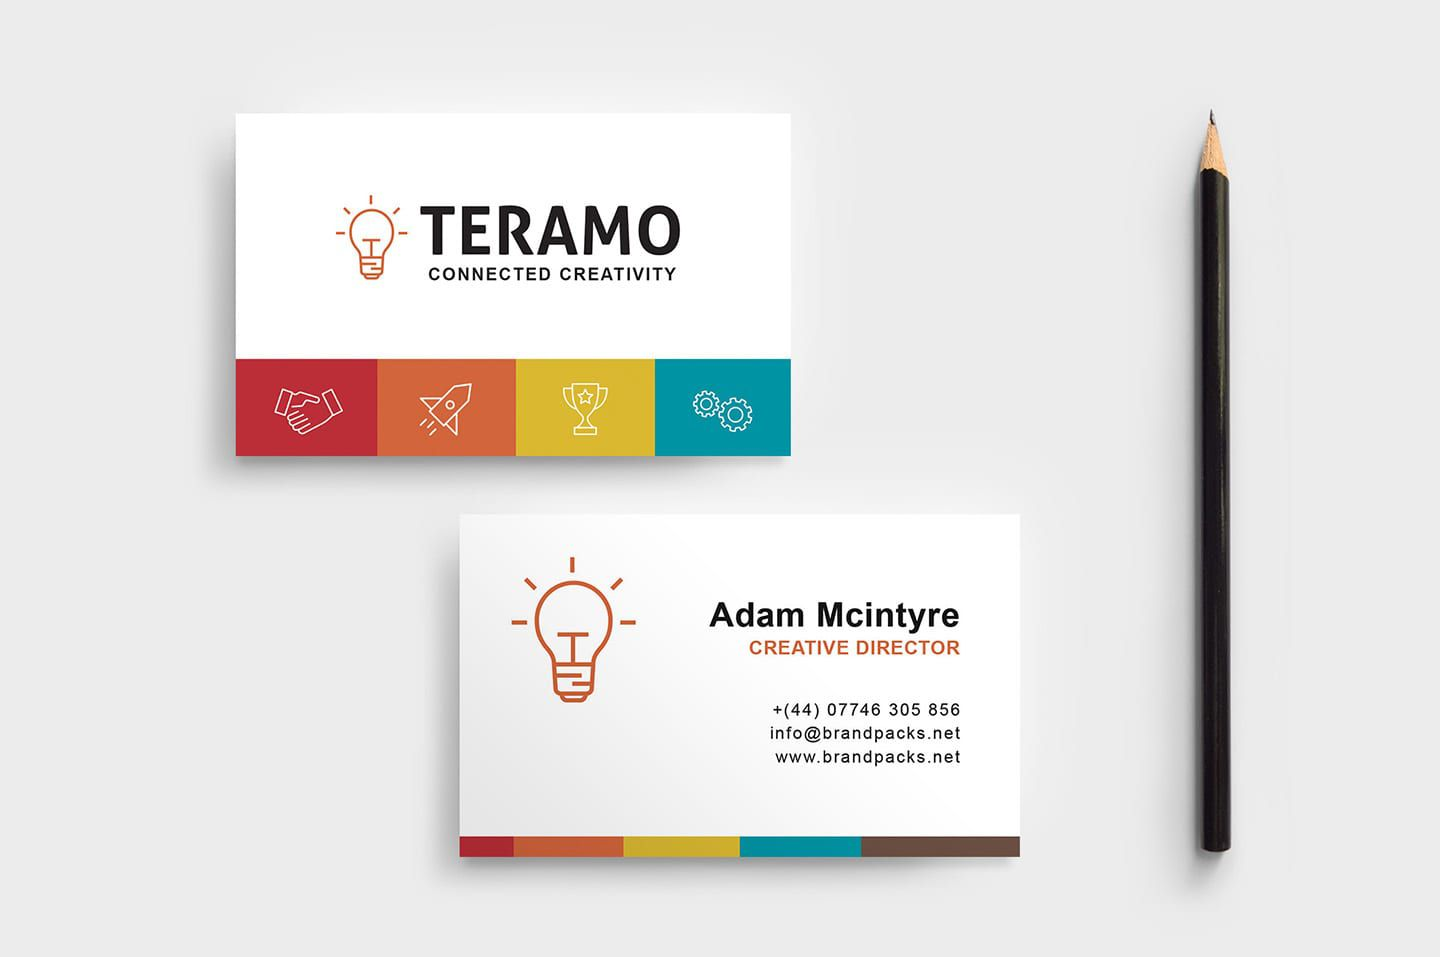 009 Top Blank Busines Card Template Psd Free Download Design  PhotoshopFull